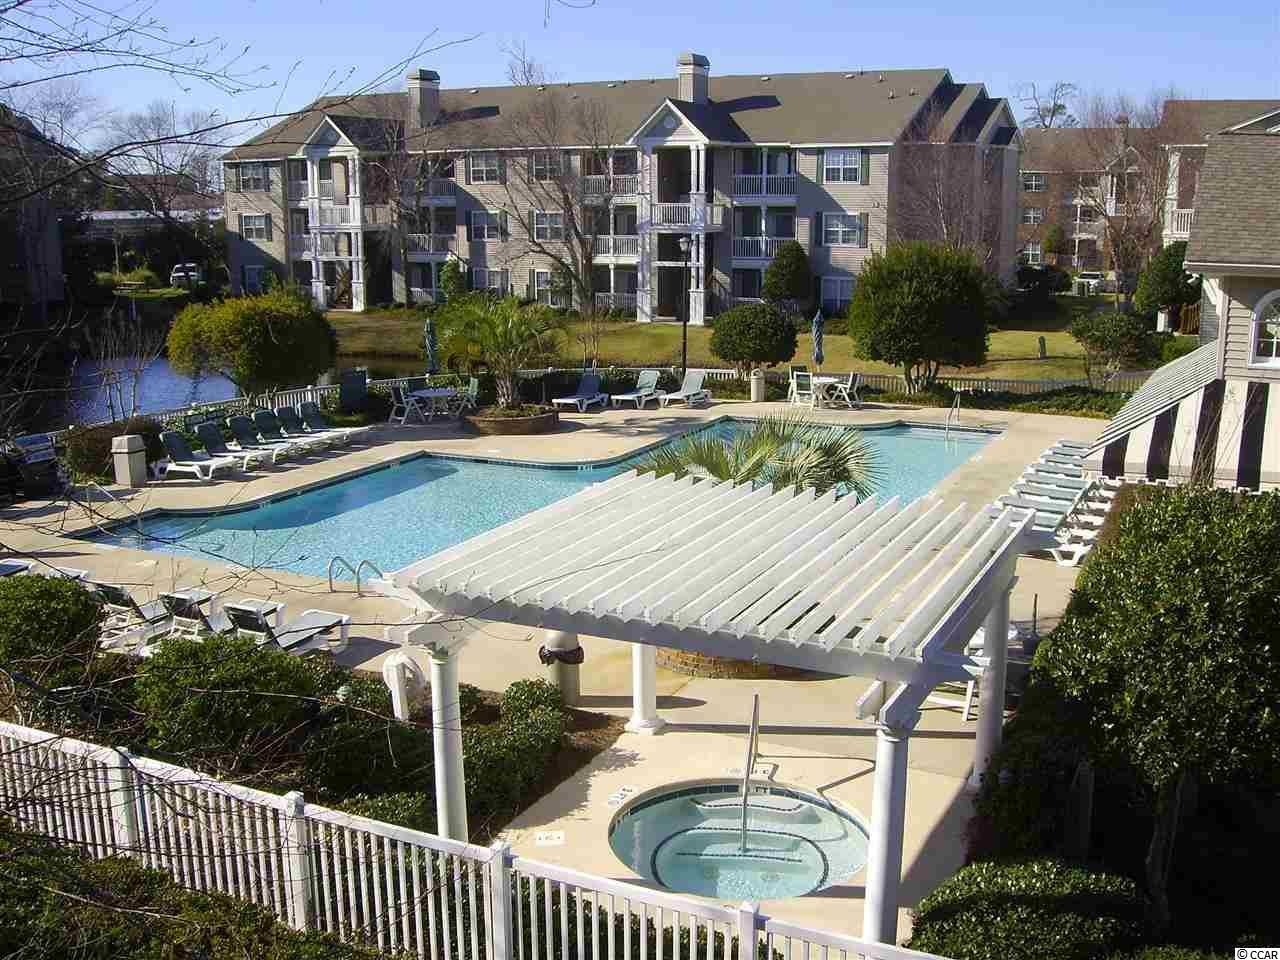 Condo Sold At Broadway Station In Myrtle Beach South Carolina Unit Listing Mls Number 1607271